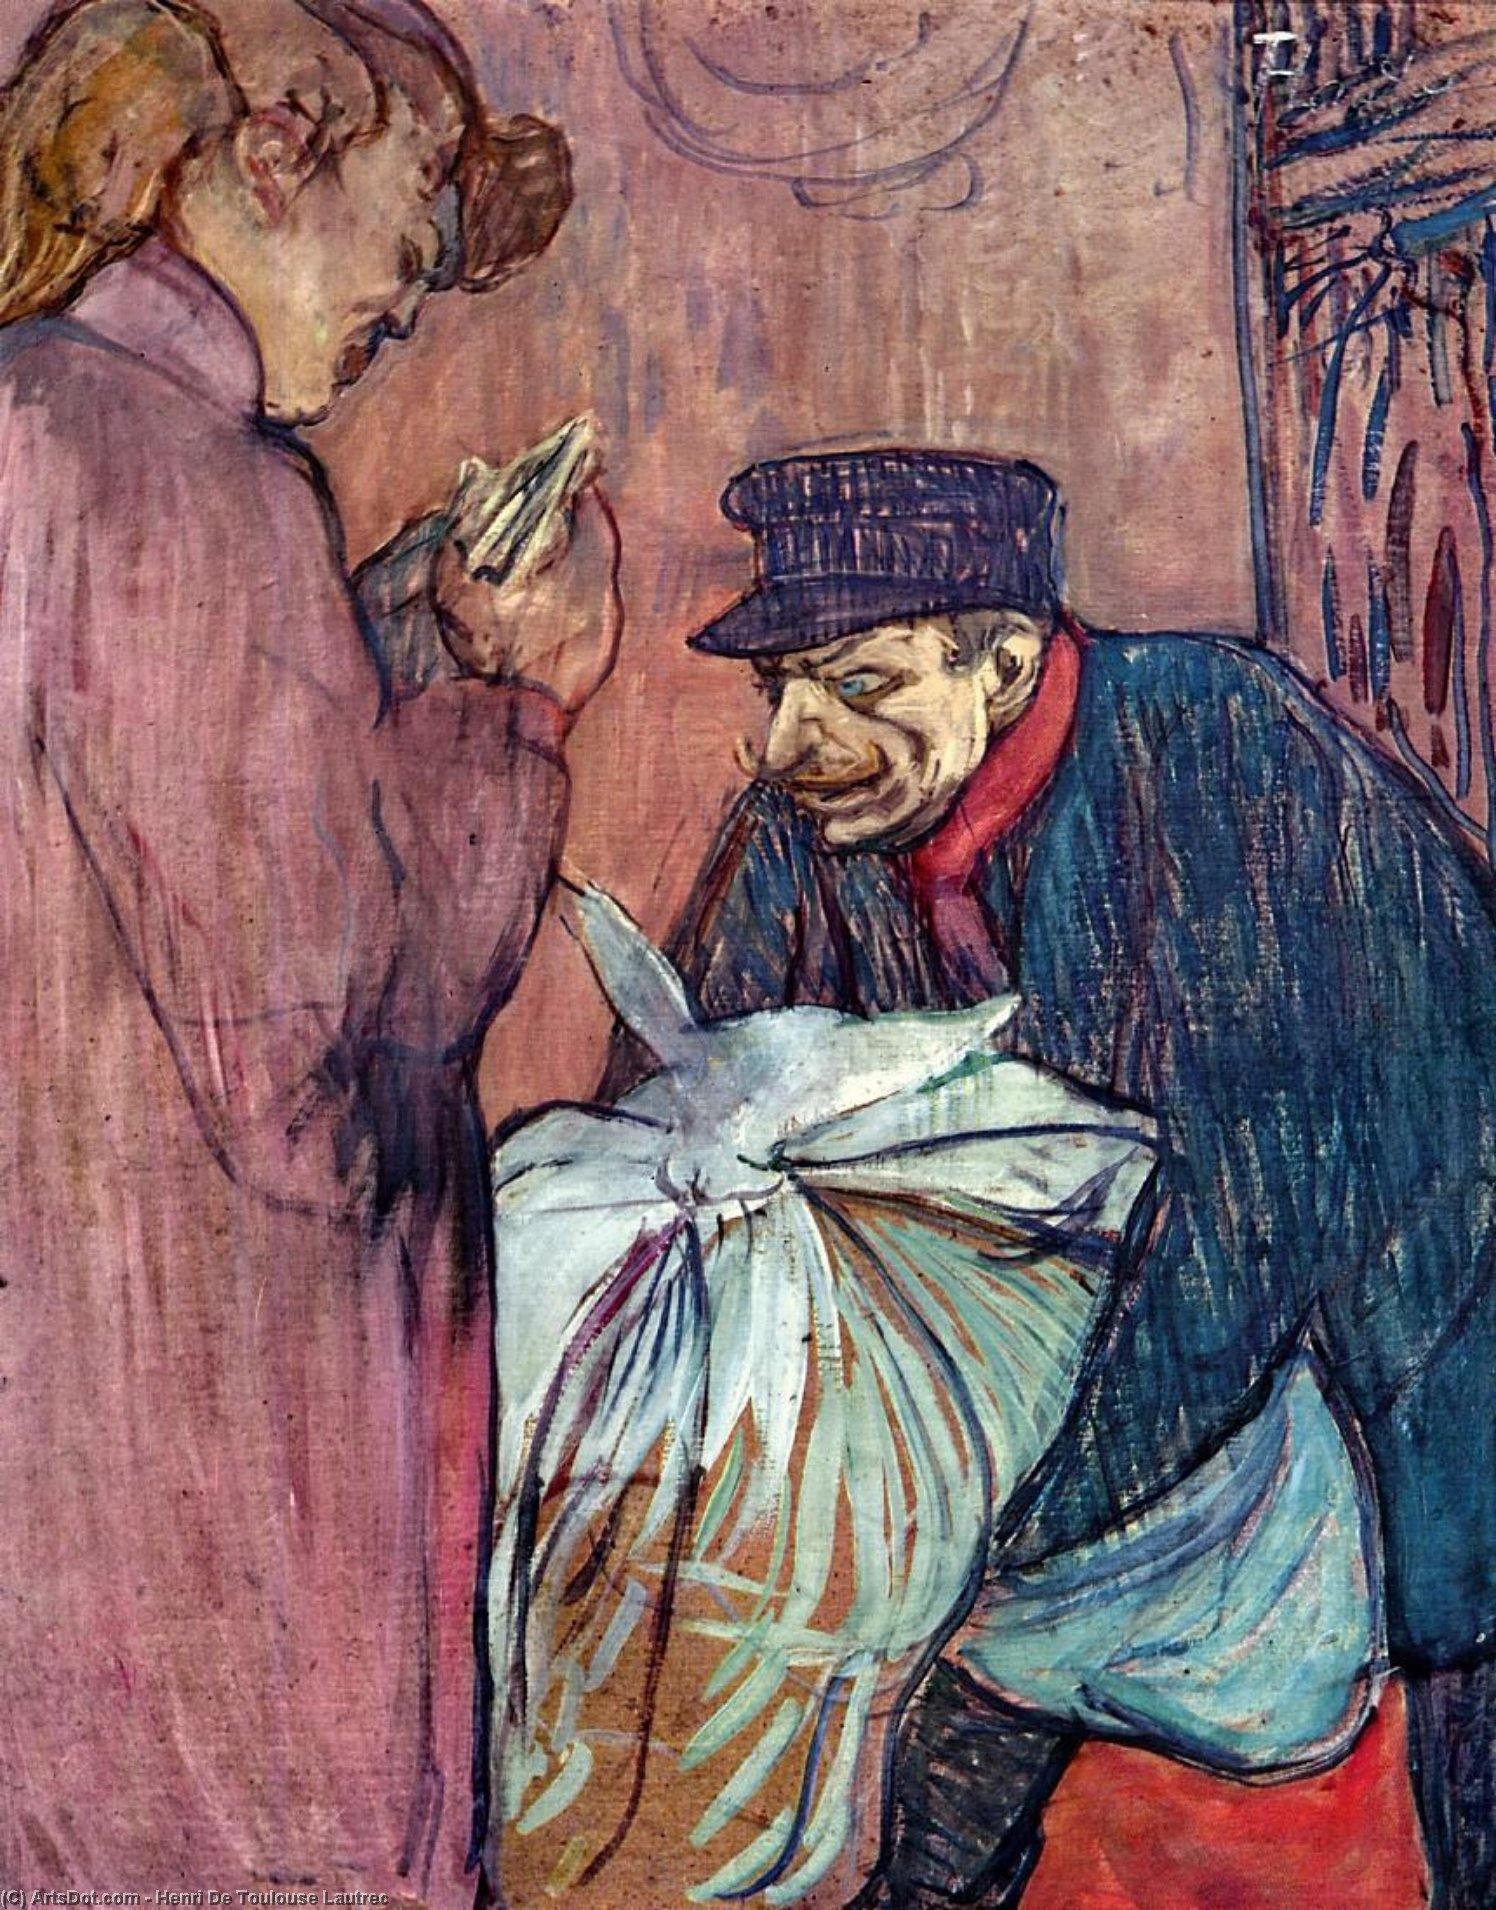 The Laundryman Calling at the Brothal, Oil by Henri De Toulouse Lautrec (1864-1901, France)